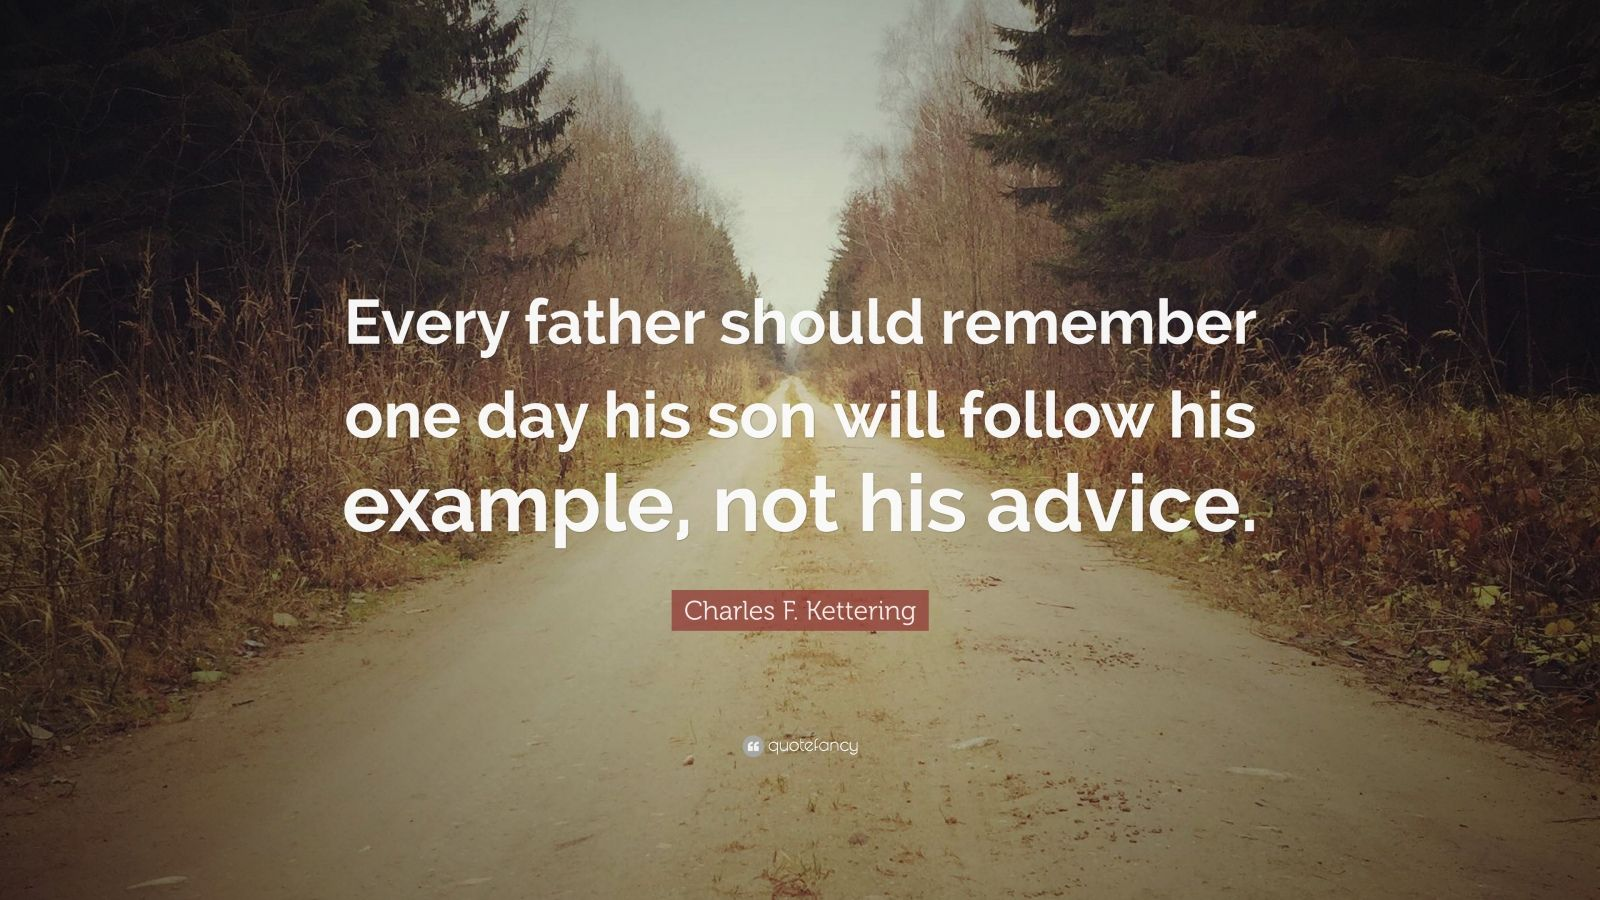 """Charles F. Kettering Quote: """"Every father should remember one day his son will follow his example, not his advice."""""""